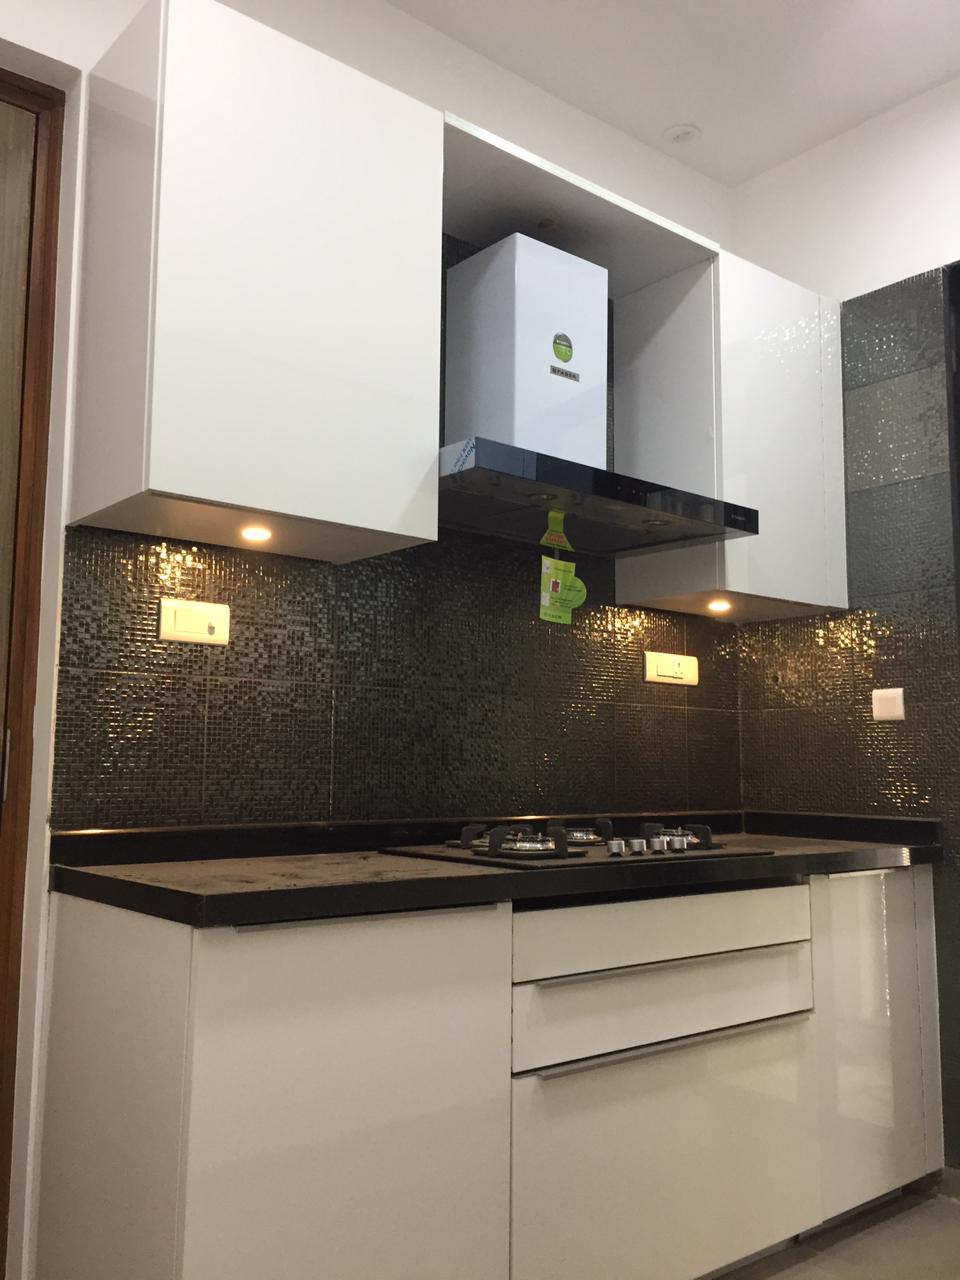 2 Bhk for Rent in Lodha Parkside, Worli @85 K